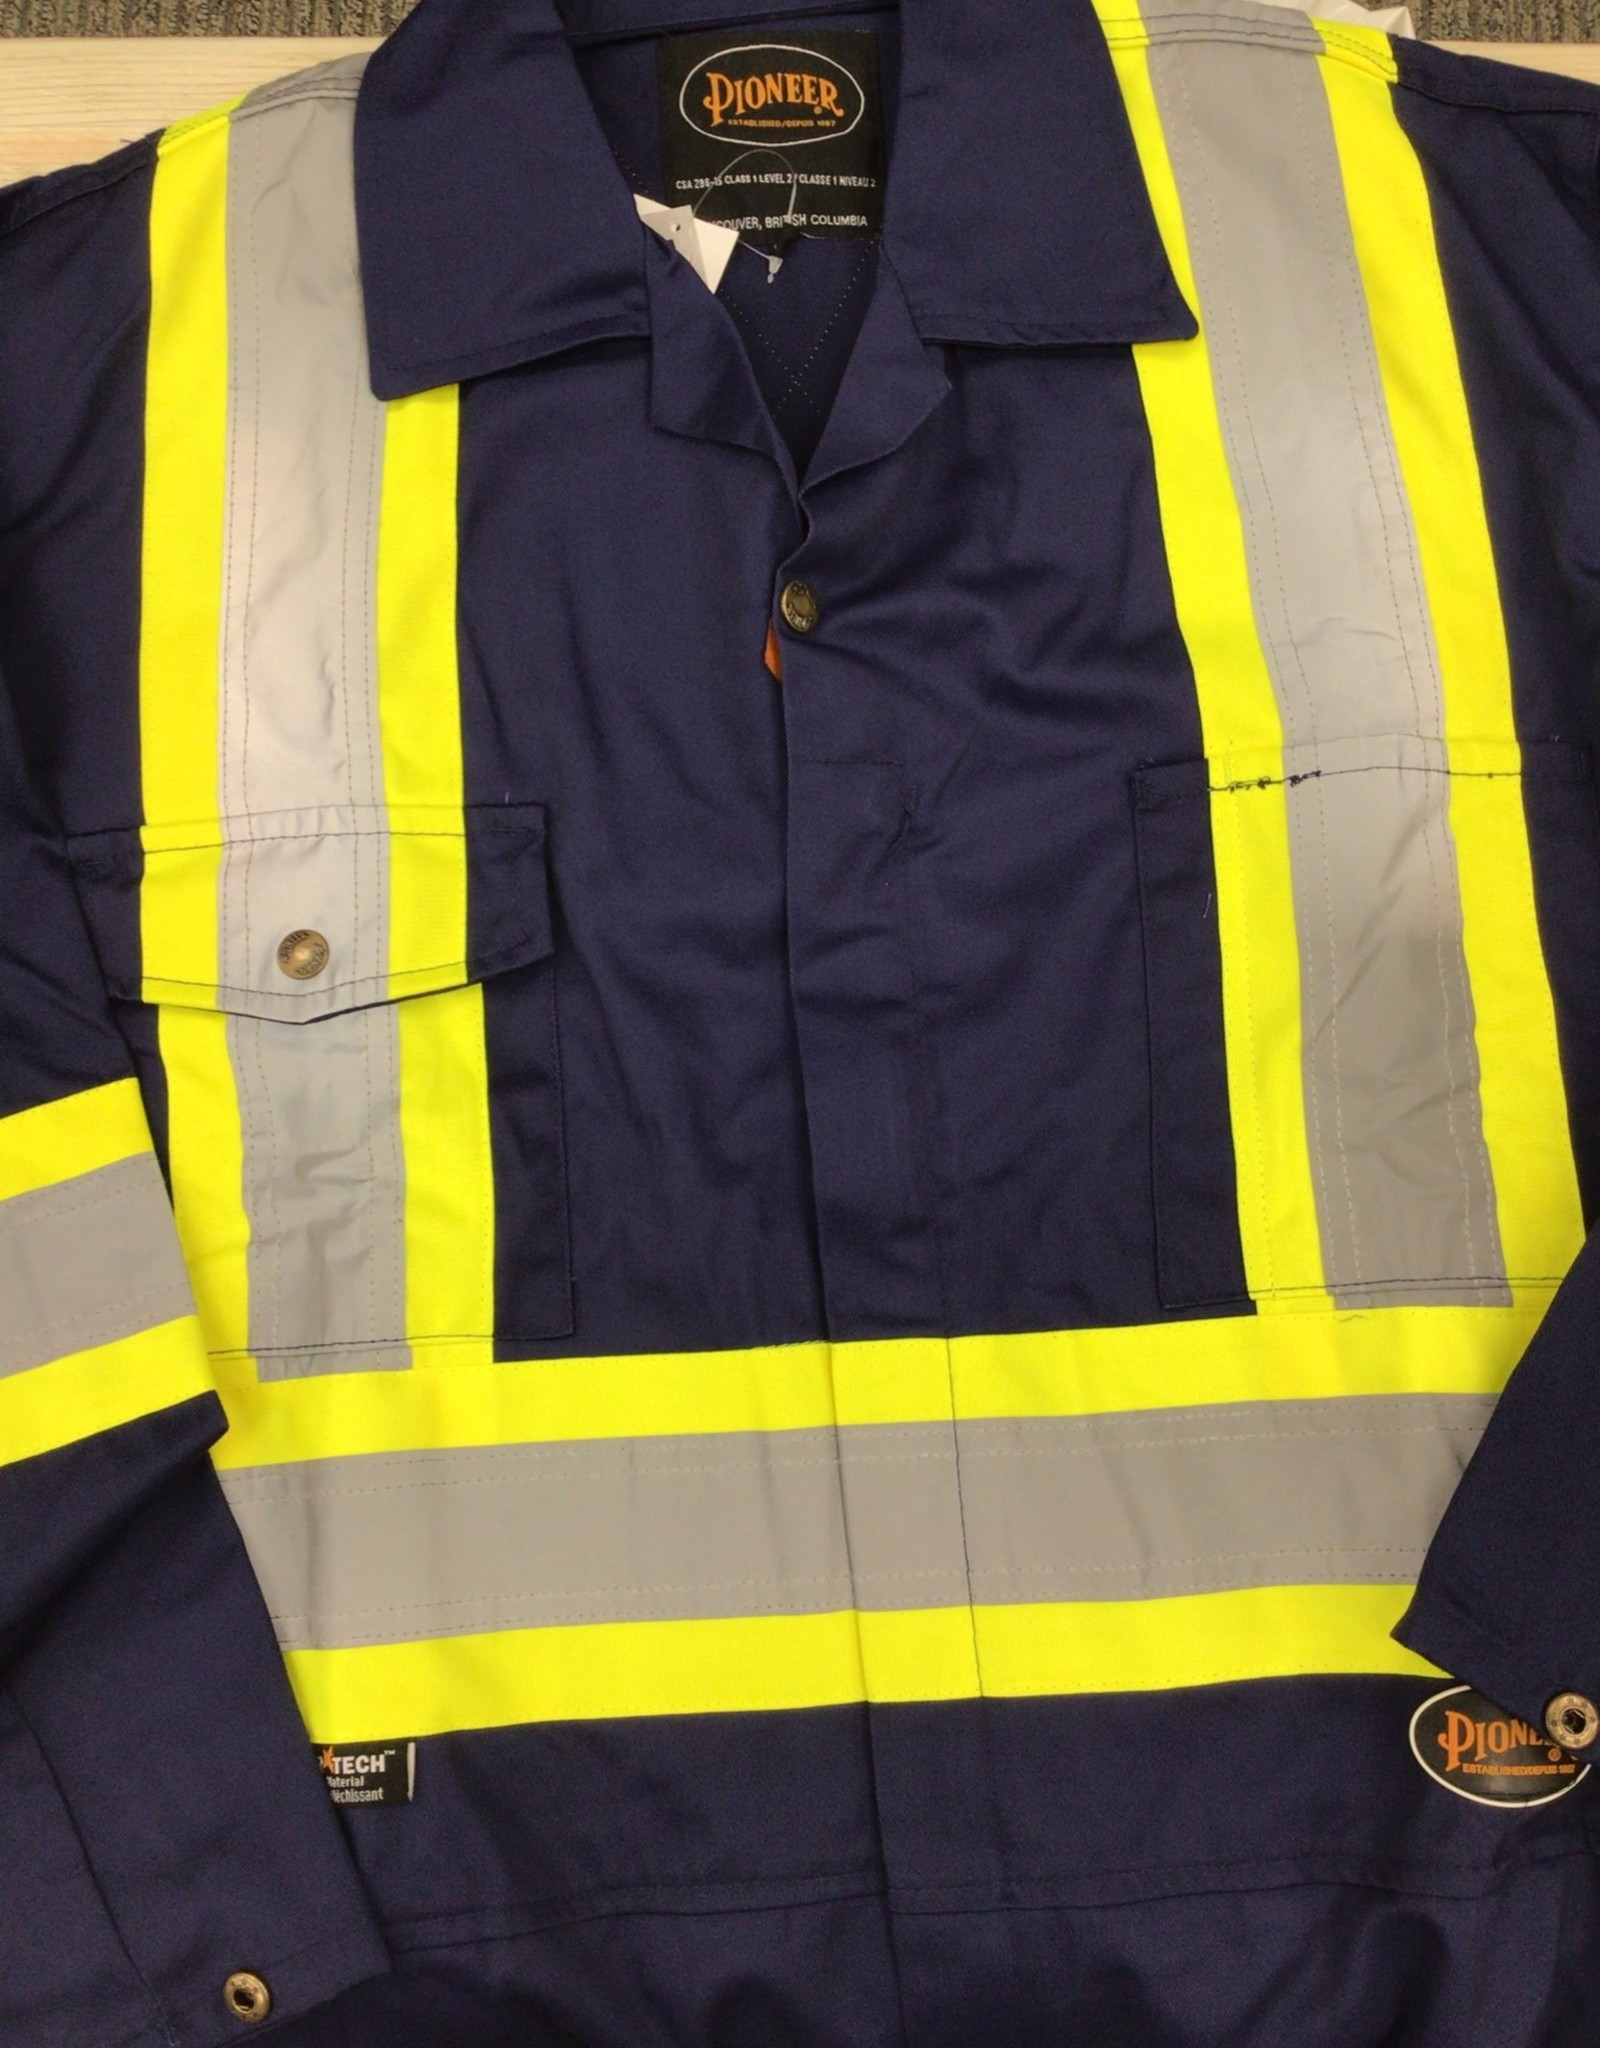 Pioneer Pioneer Safety Poly/Cotton Coveralls 5516T Men's